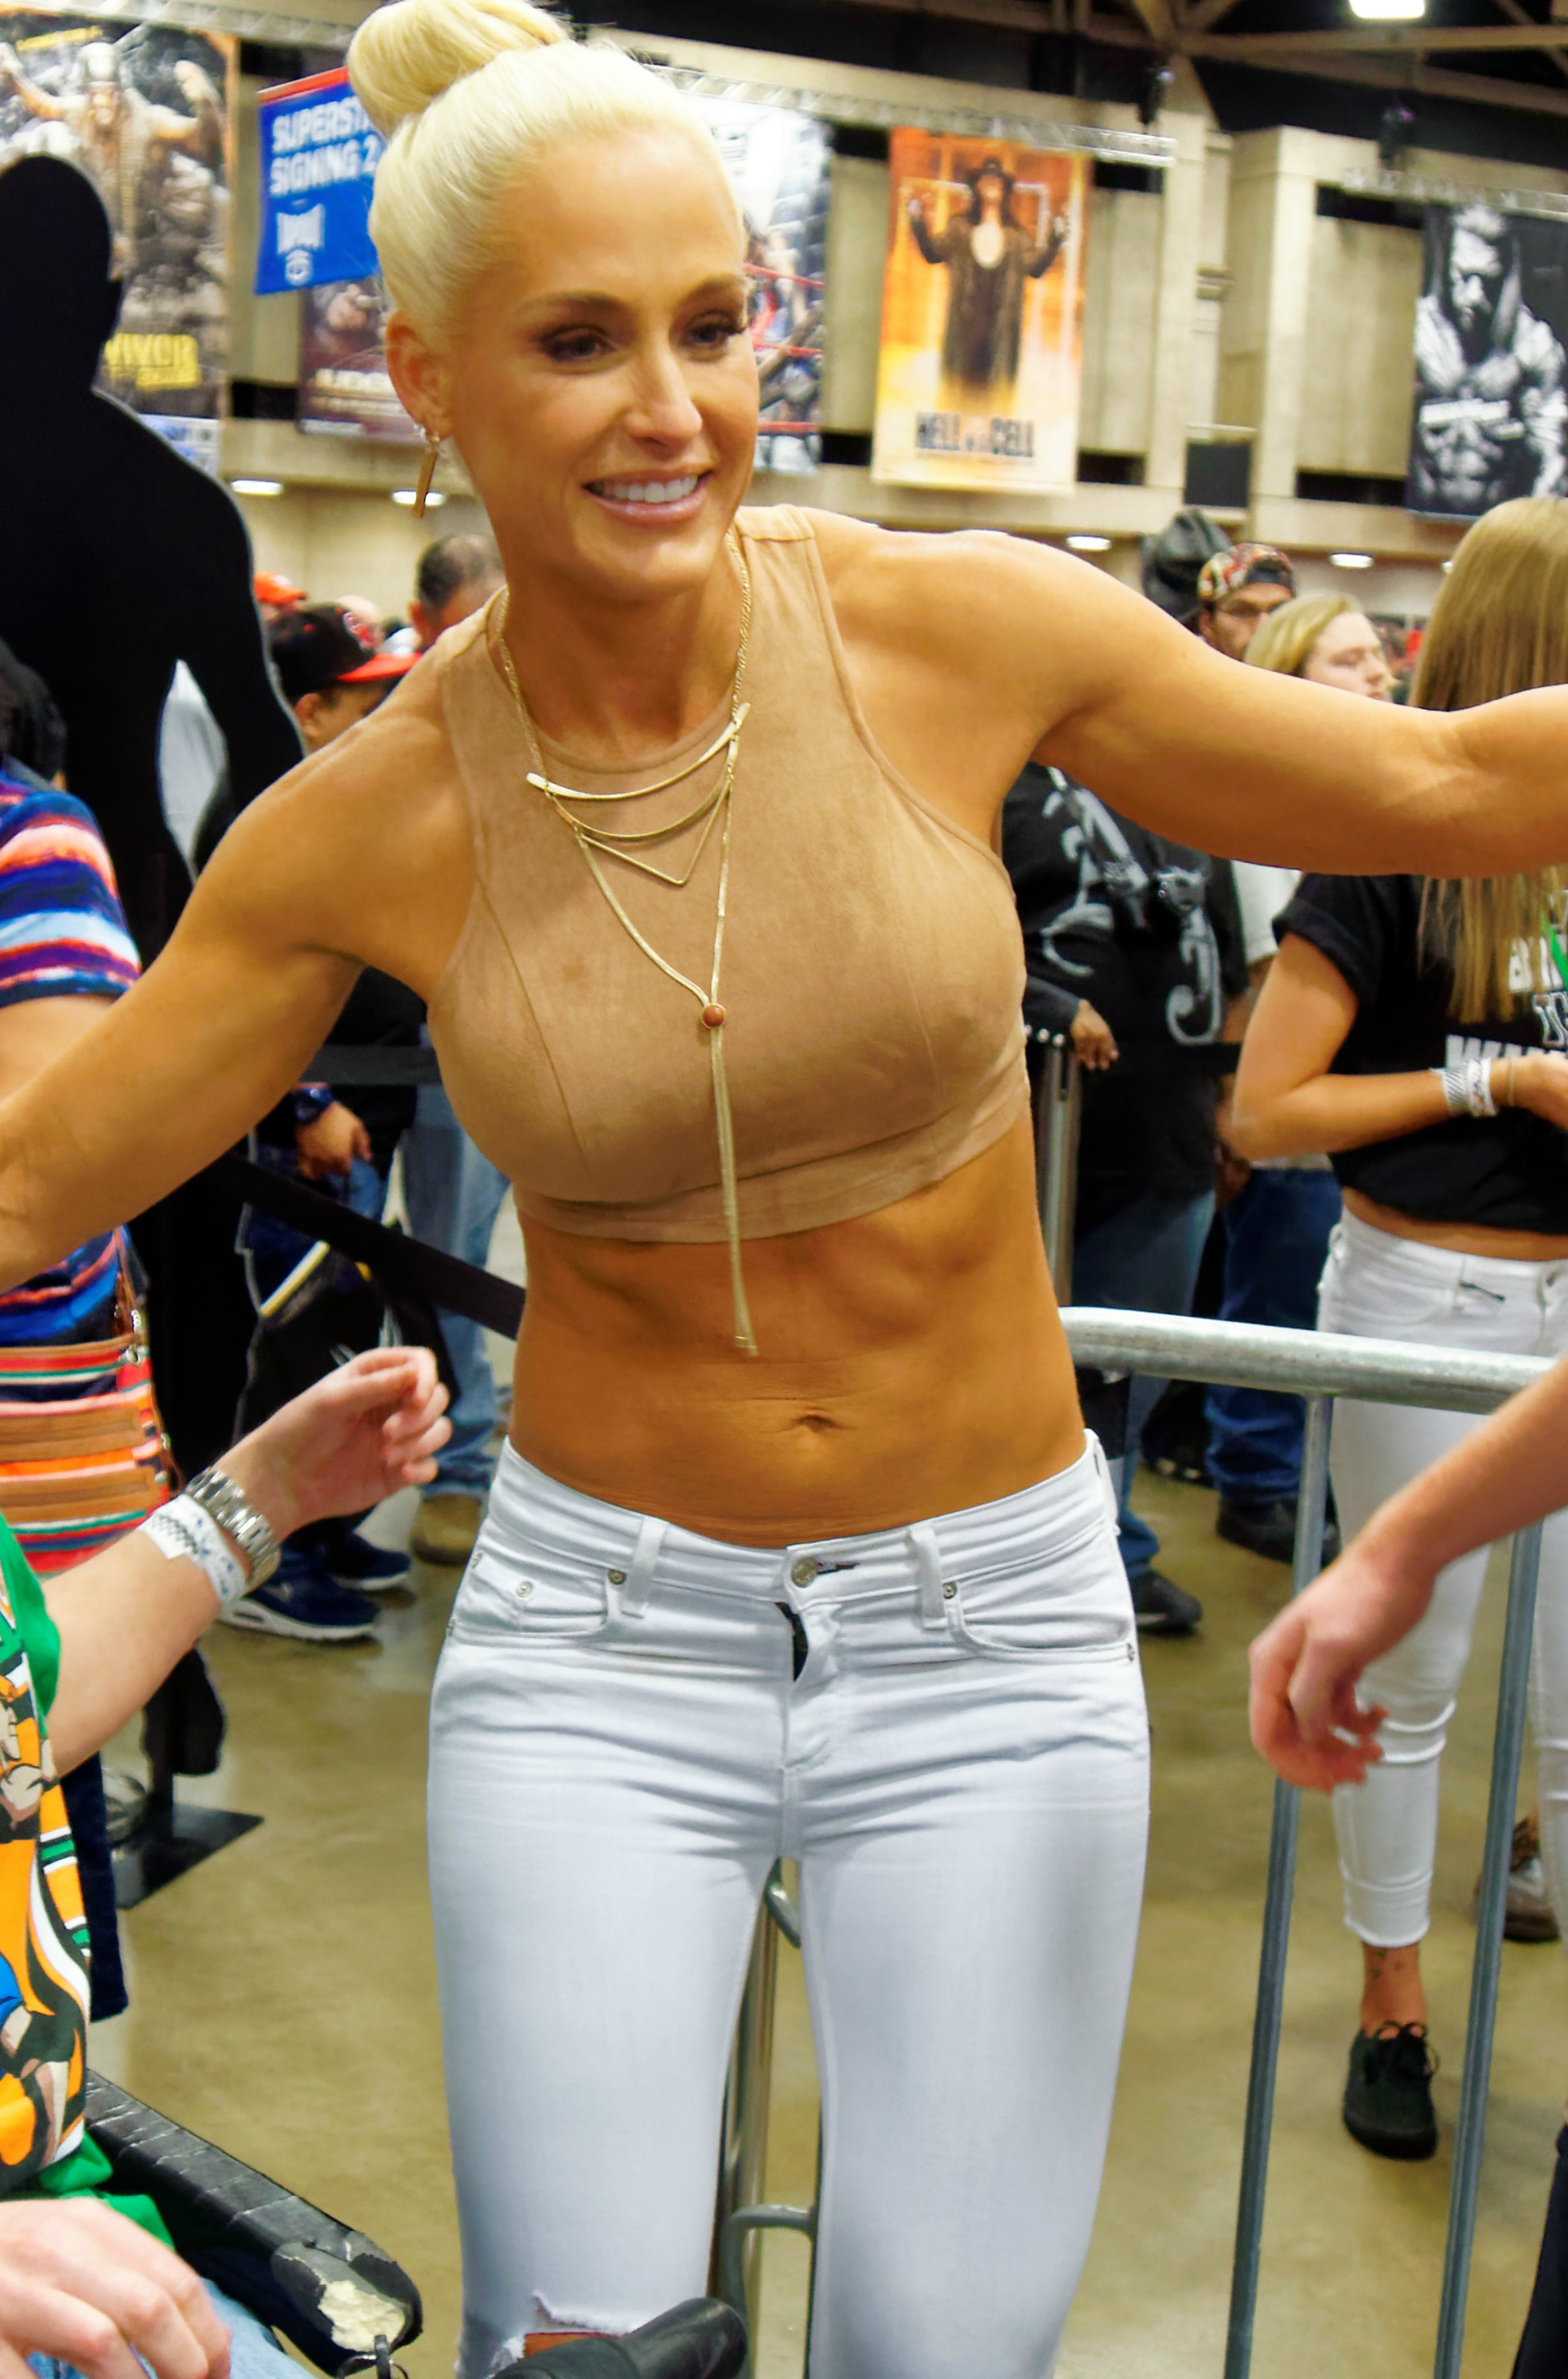 Michelle mccool photos 3